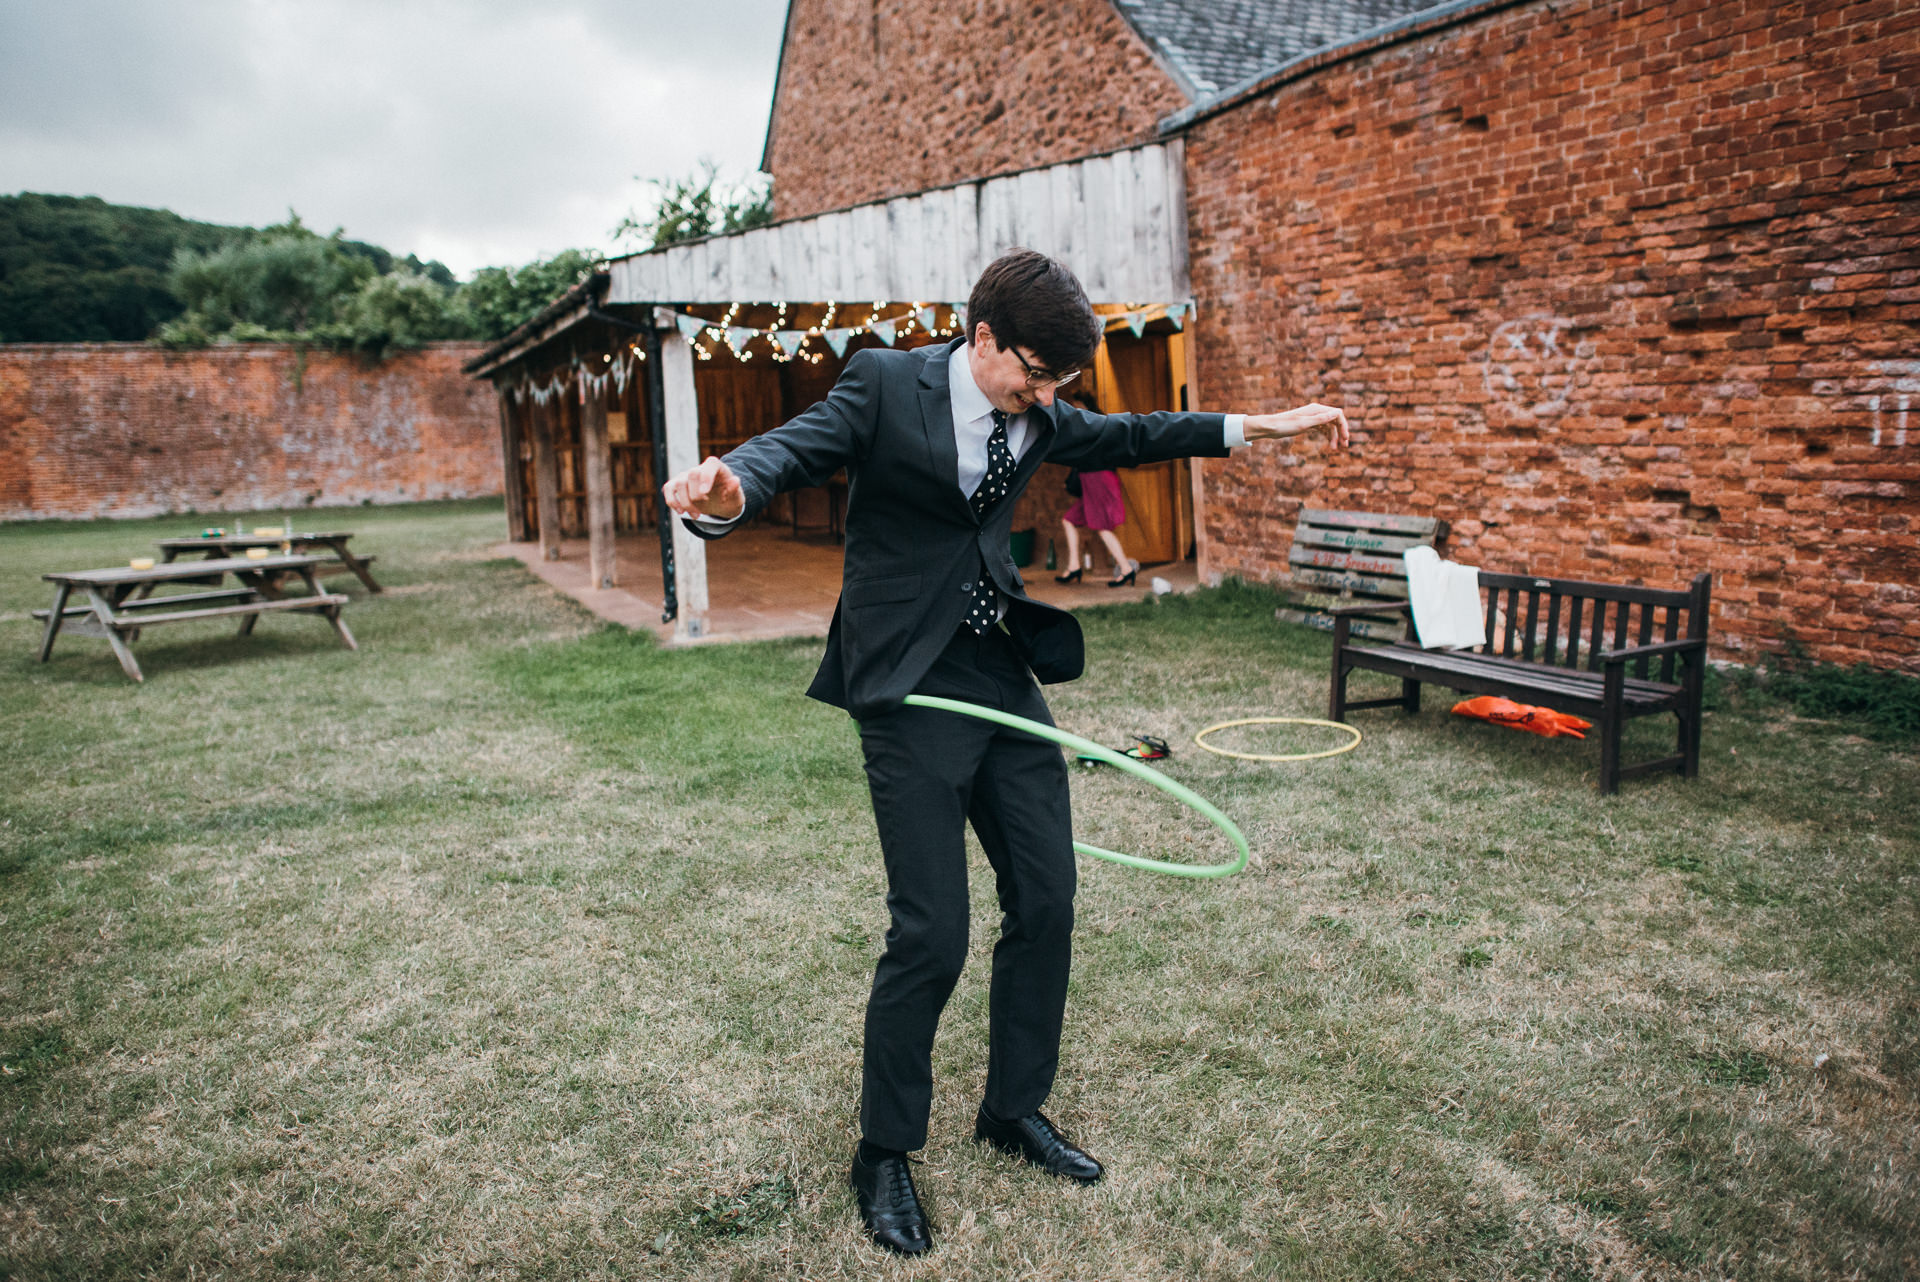 Hula hooping at Dunster Tithe Barn wedding